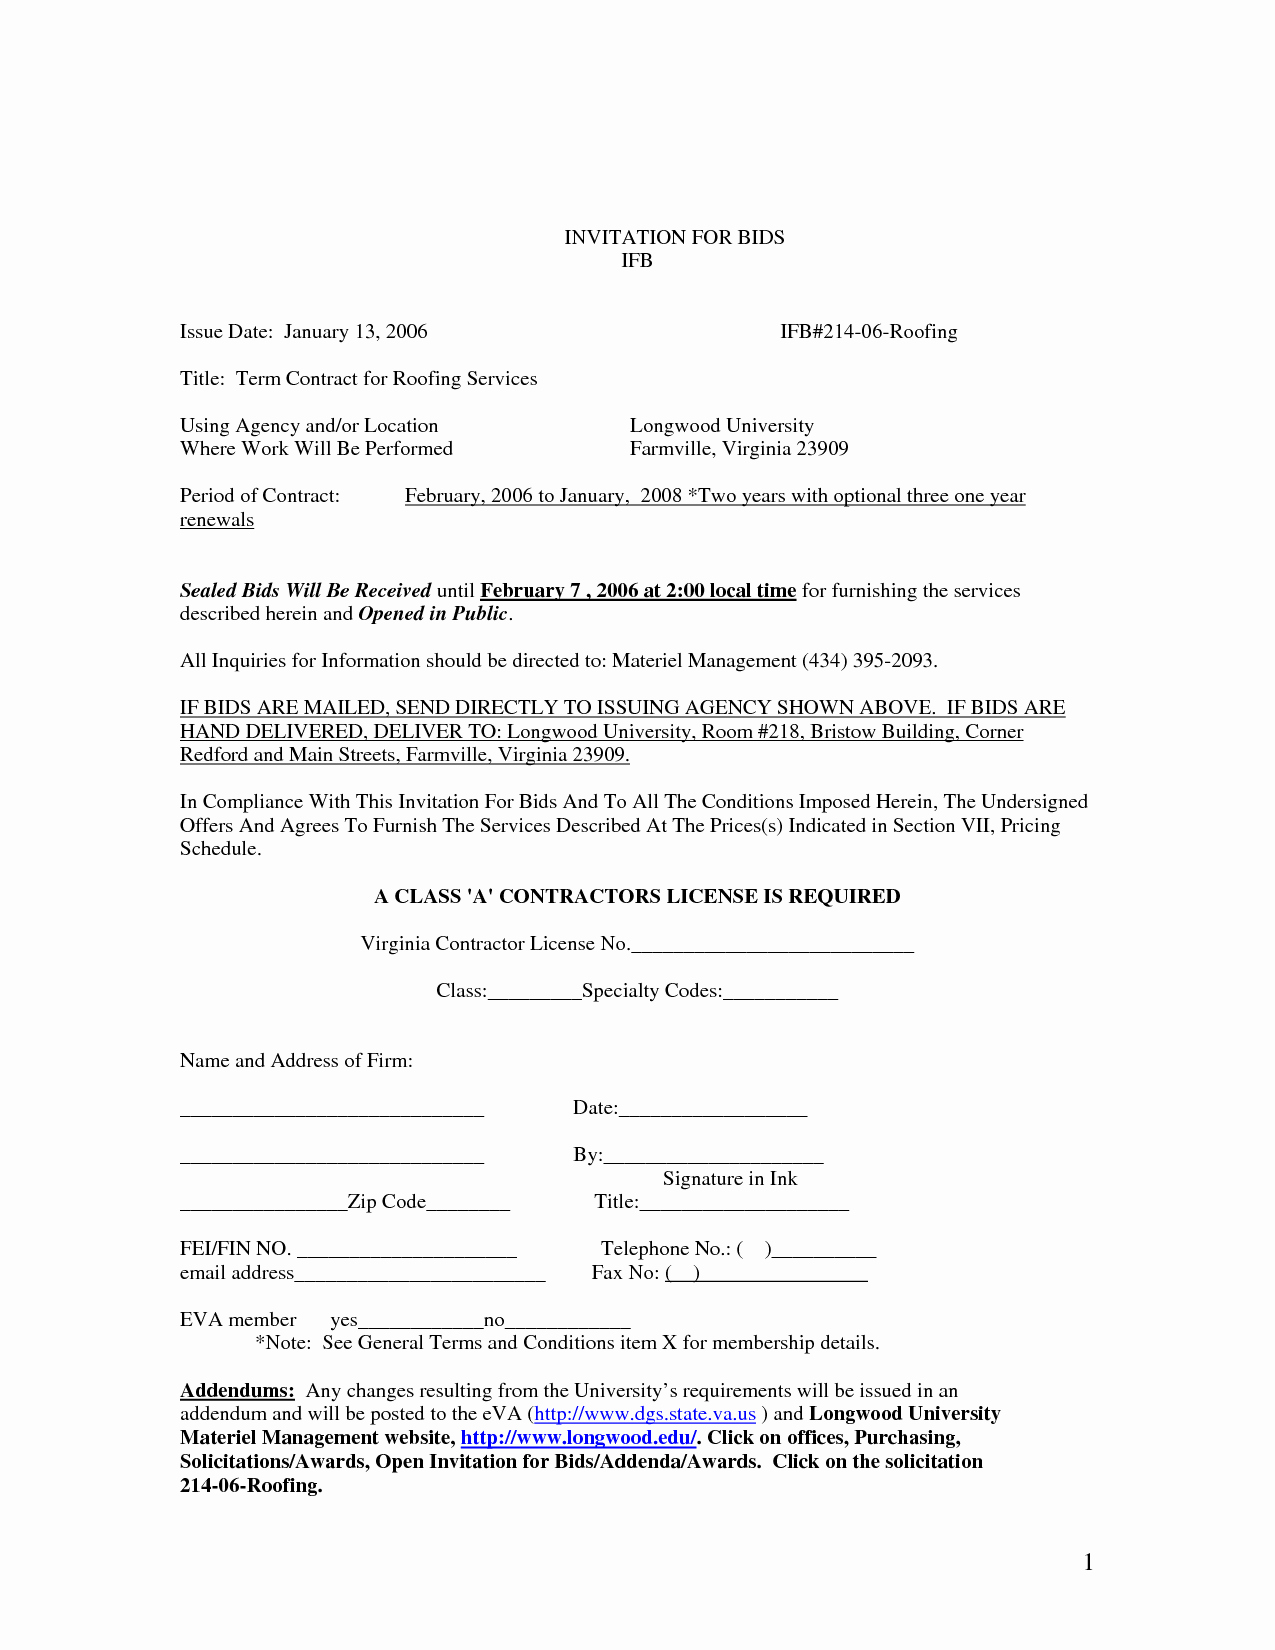 Free Residential Roofing Contract Template Lovely Roofing Contract Template Free Printable Documents